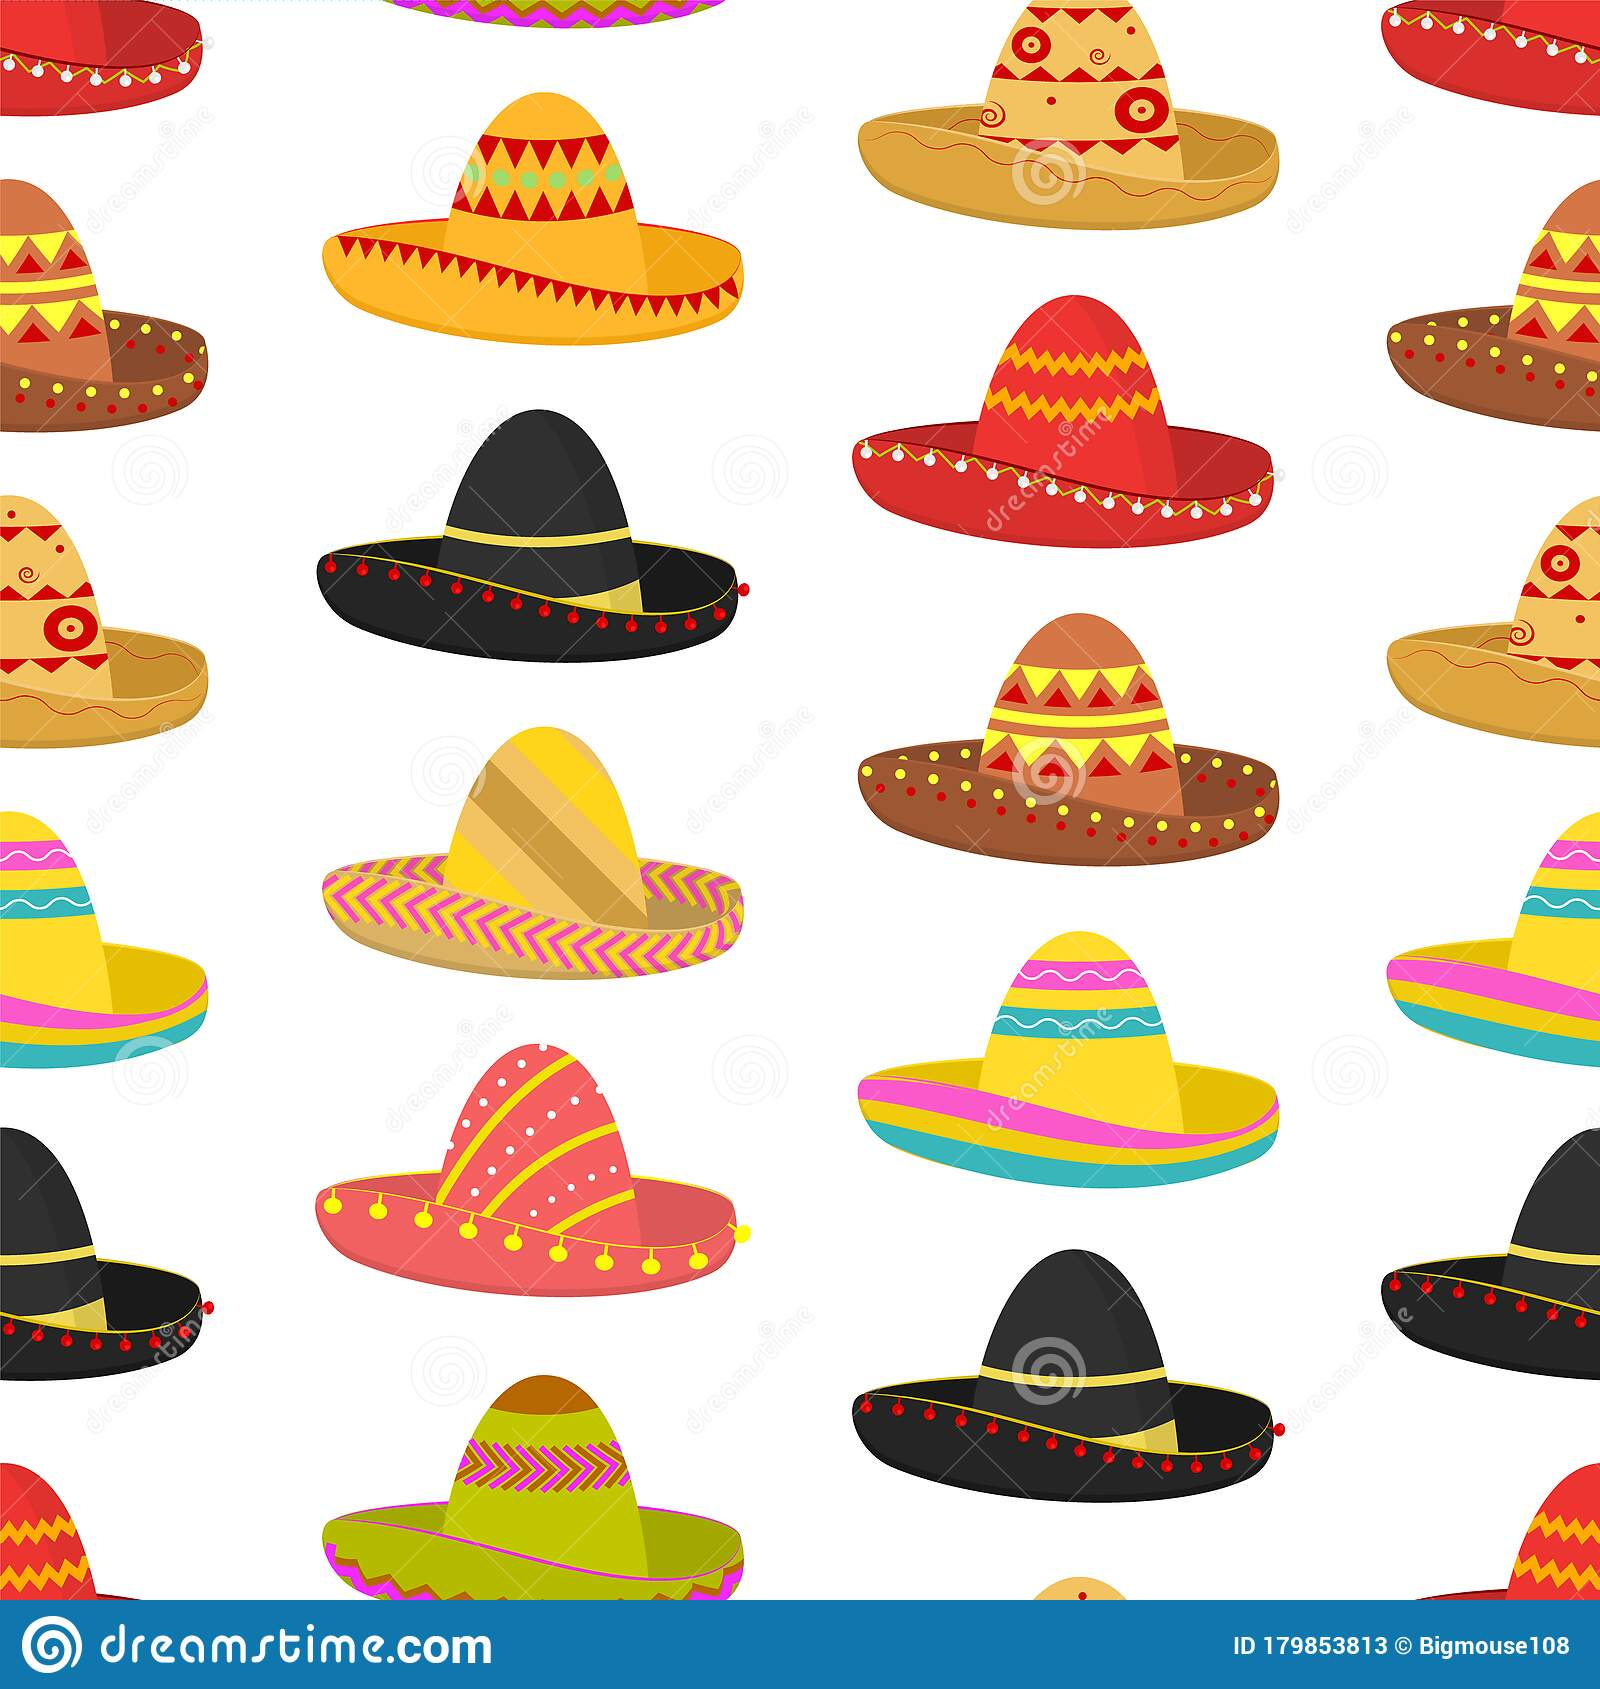 Cartoon Color Mexican Sombrero Hat Seamless Pattern Background Vector Stock Vector Illustration Of Holiday Entertainment 179853813